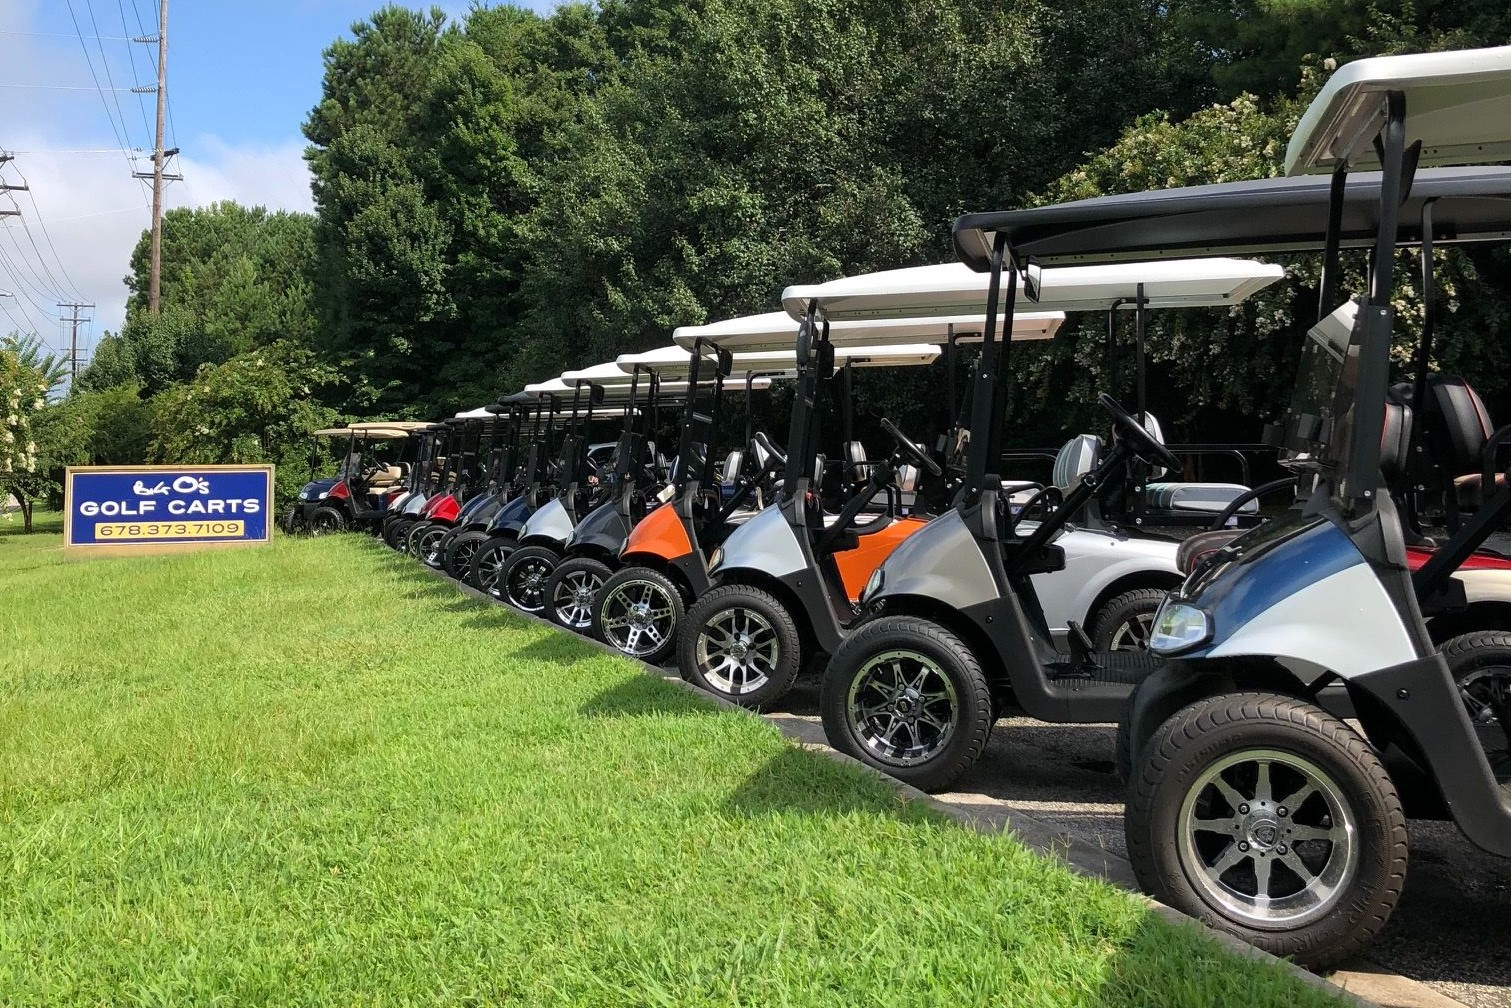 Big O's Golf Carts Lineup